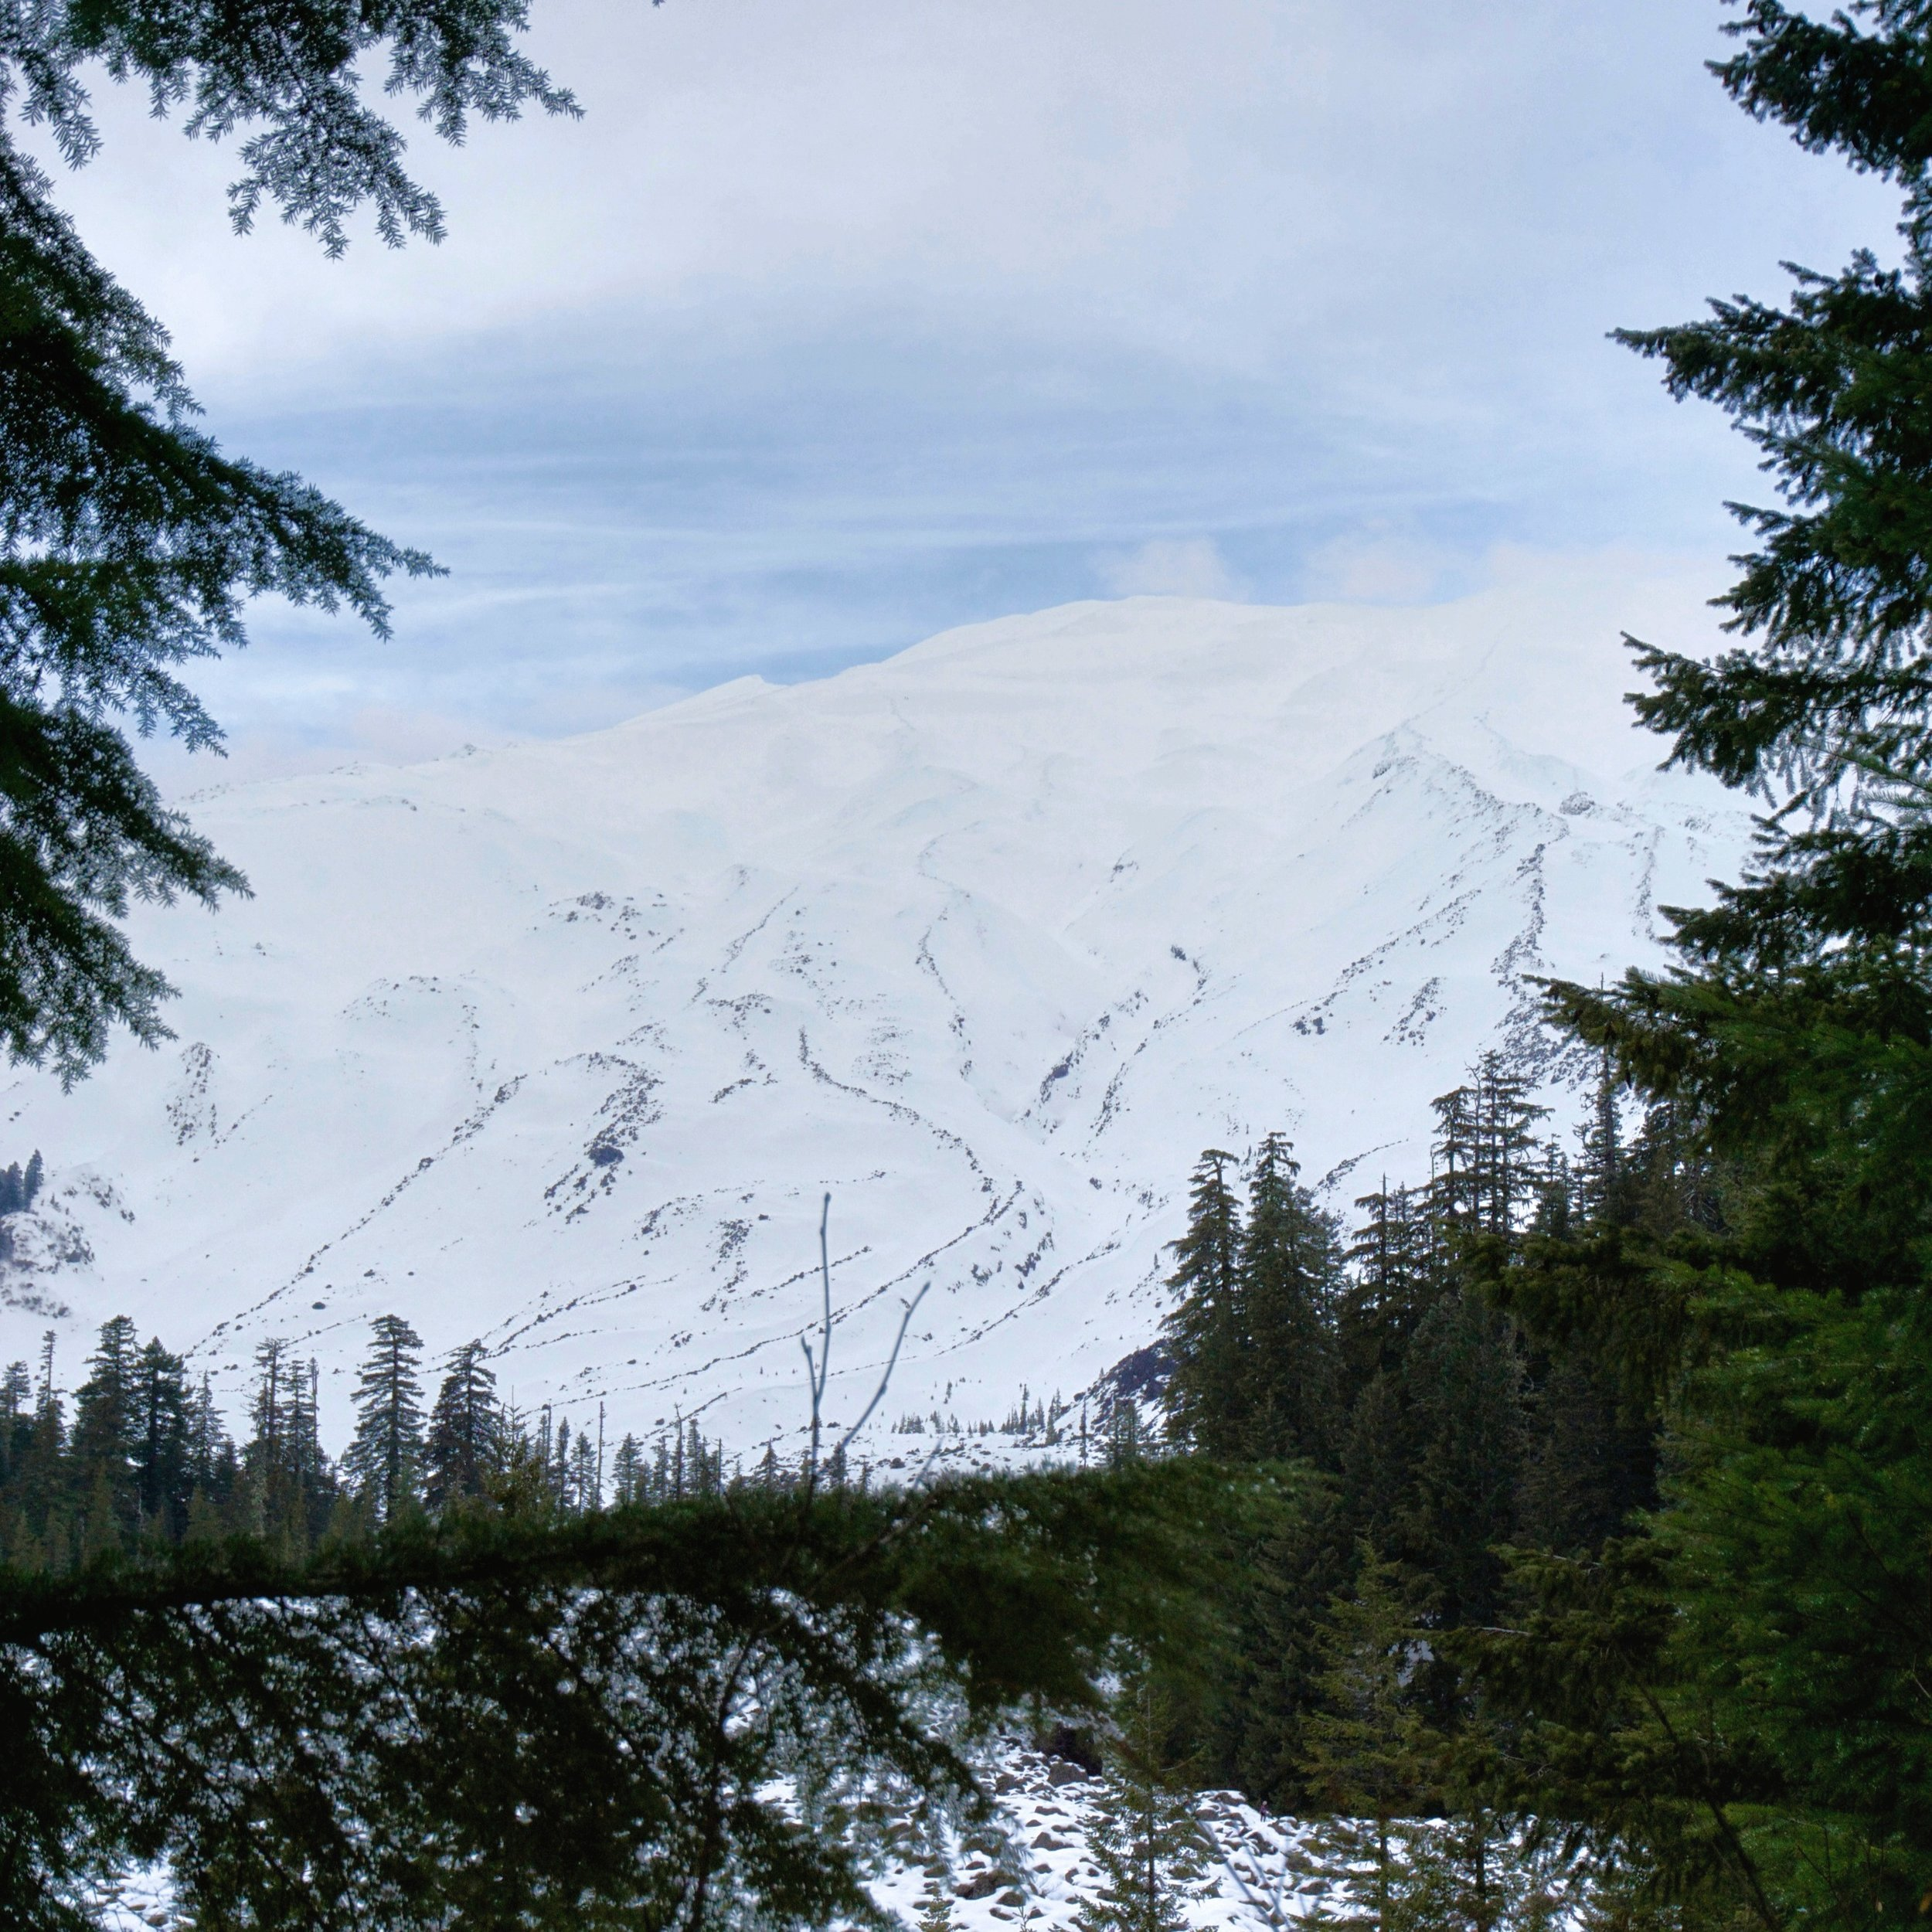 Peep part of Mount St. Helens covered in snow!